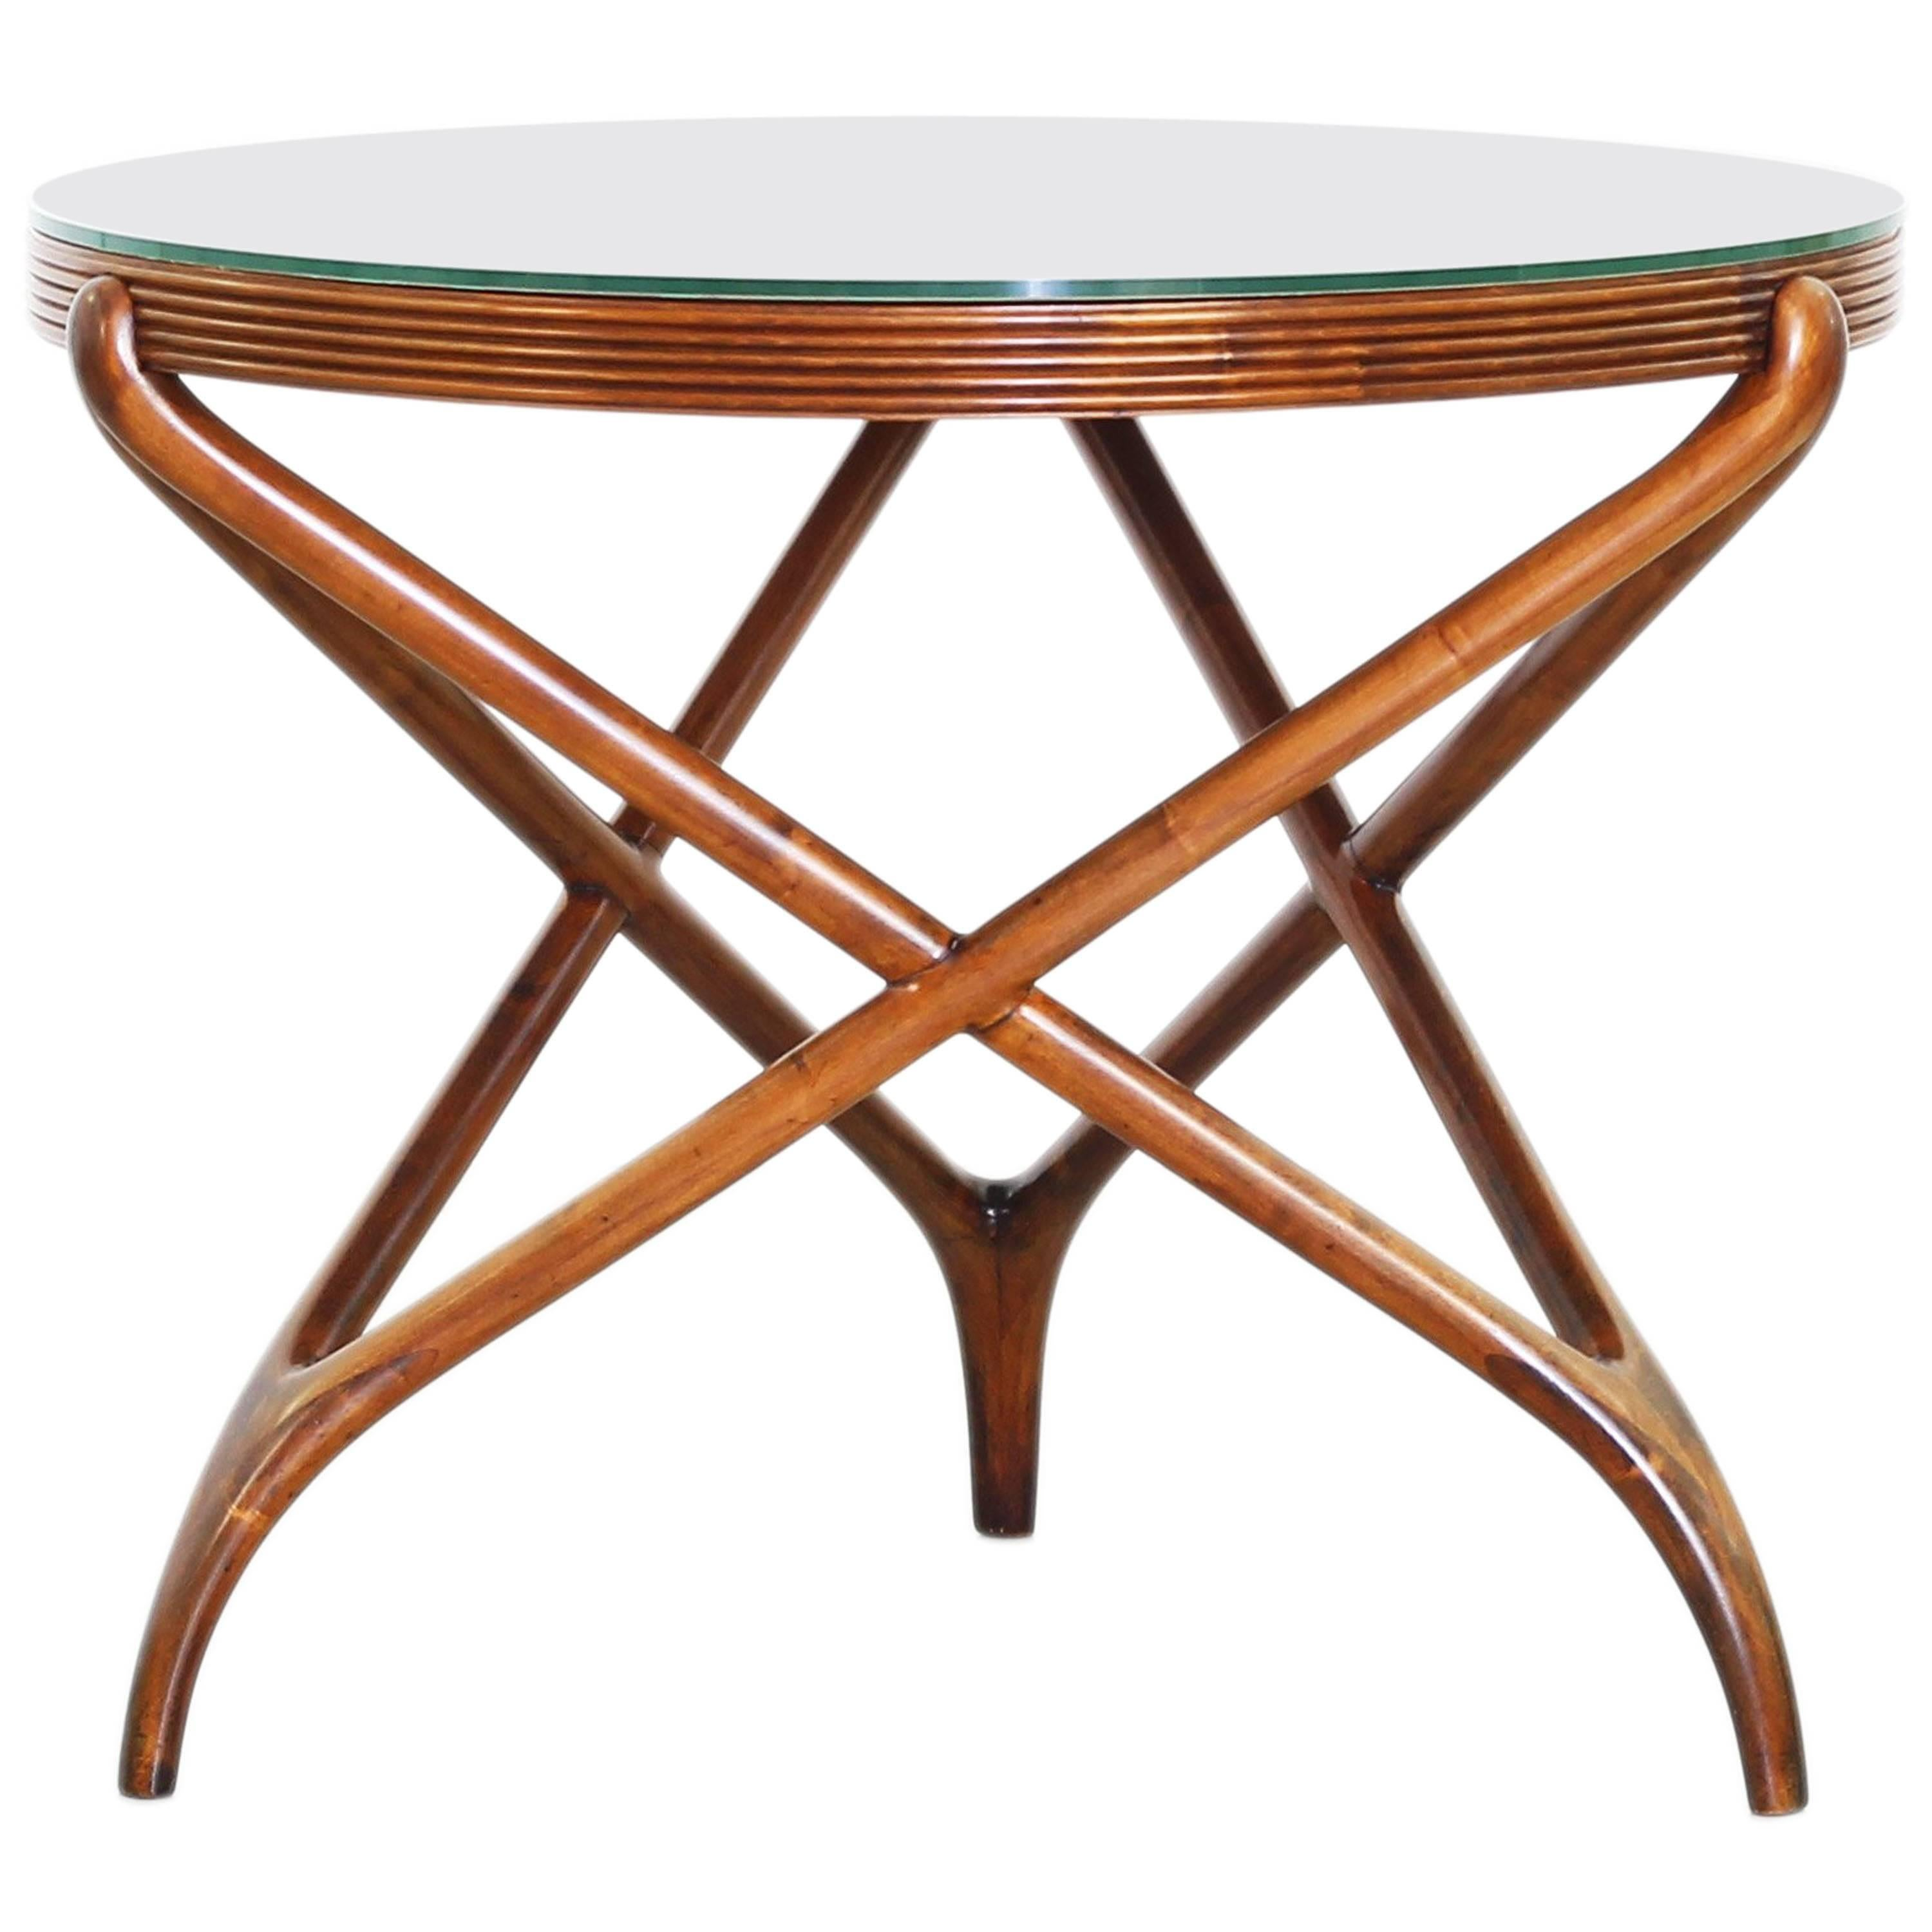 Italian Round Dining Table Attributed to Ico Parisi